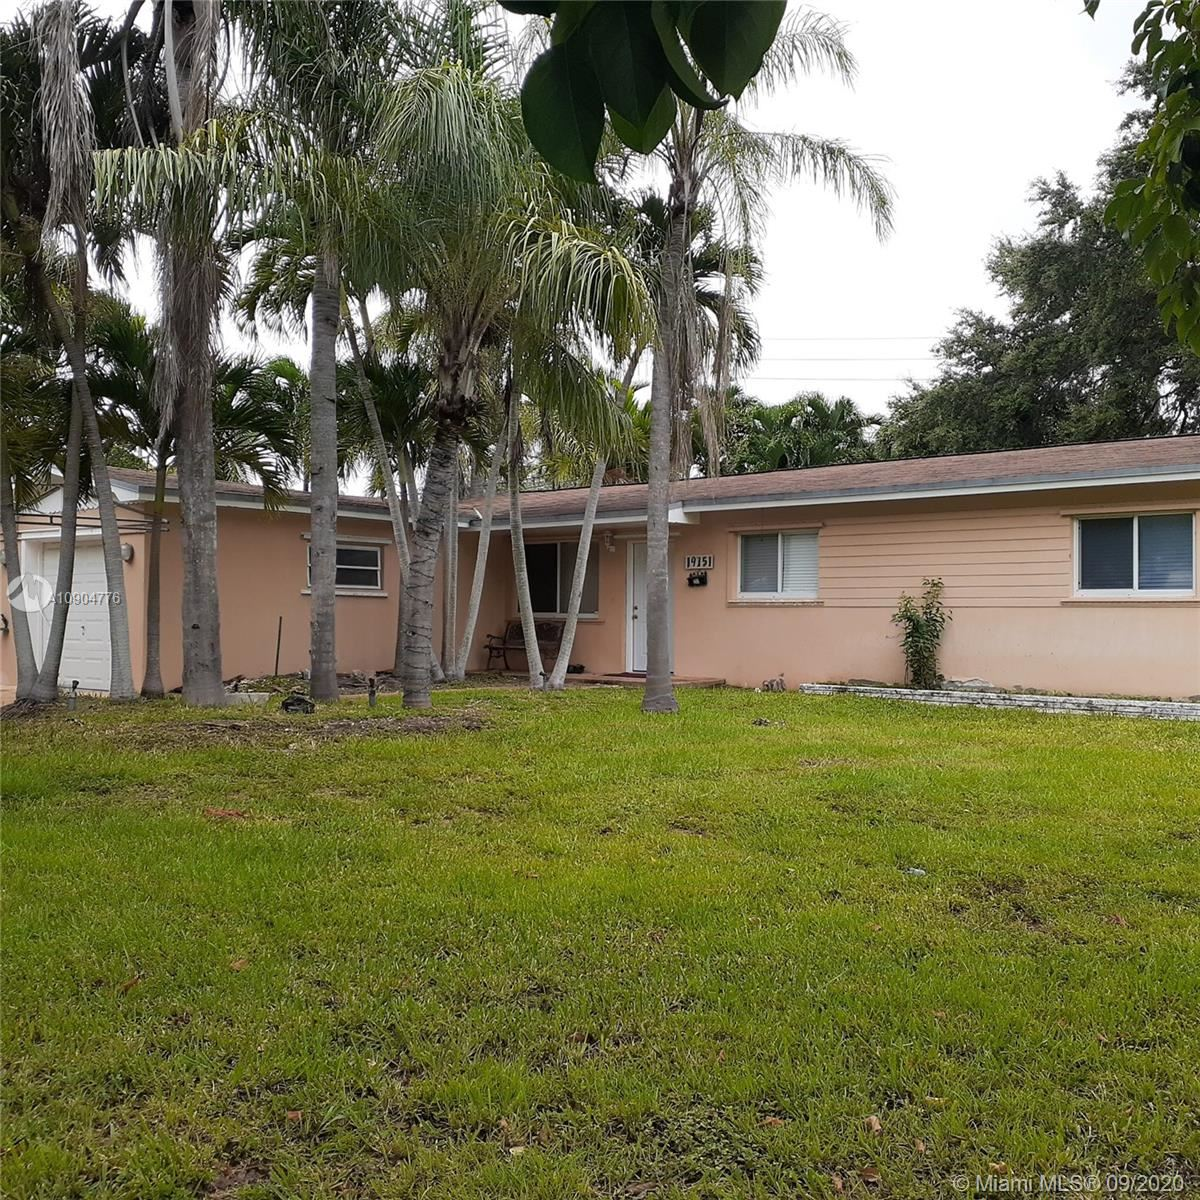 19751 Whispering Pines Rd, Cutler Bay, FL 33157 - #: A10904776